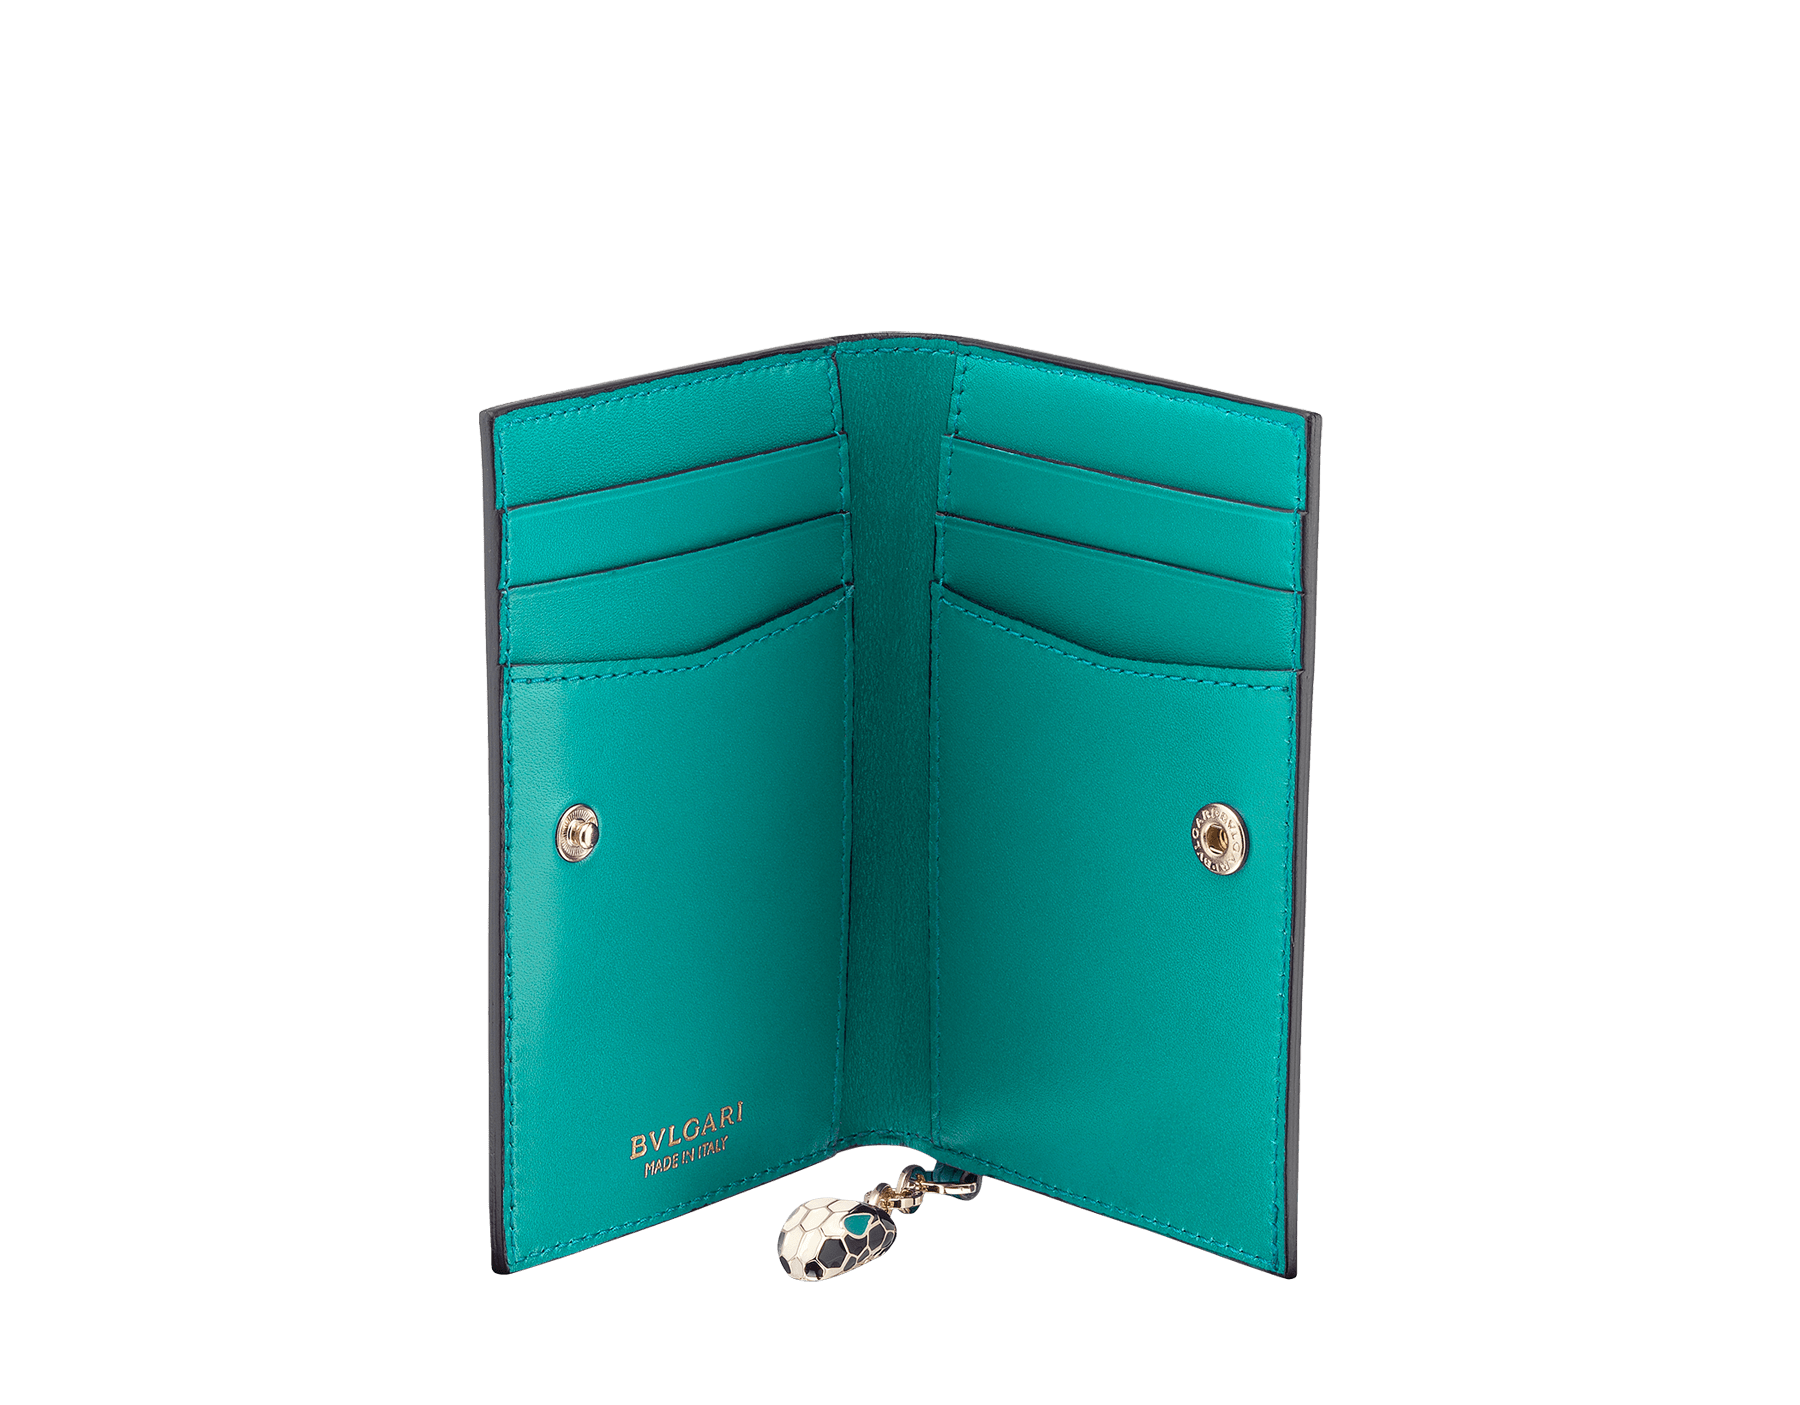 Serpenti Forever folded credit card holder in glacier turquoise calf leather. Iconic snakehead charm in black and white enamel, with green malachite enamel eyes. SEA-CC-HOLDER-FOLD-CLd image 2